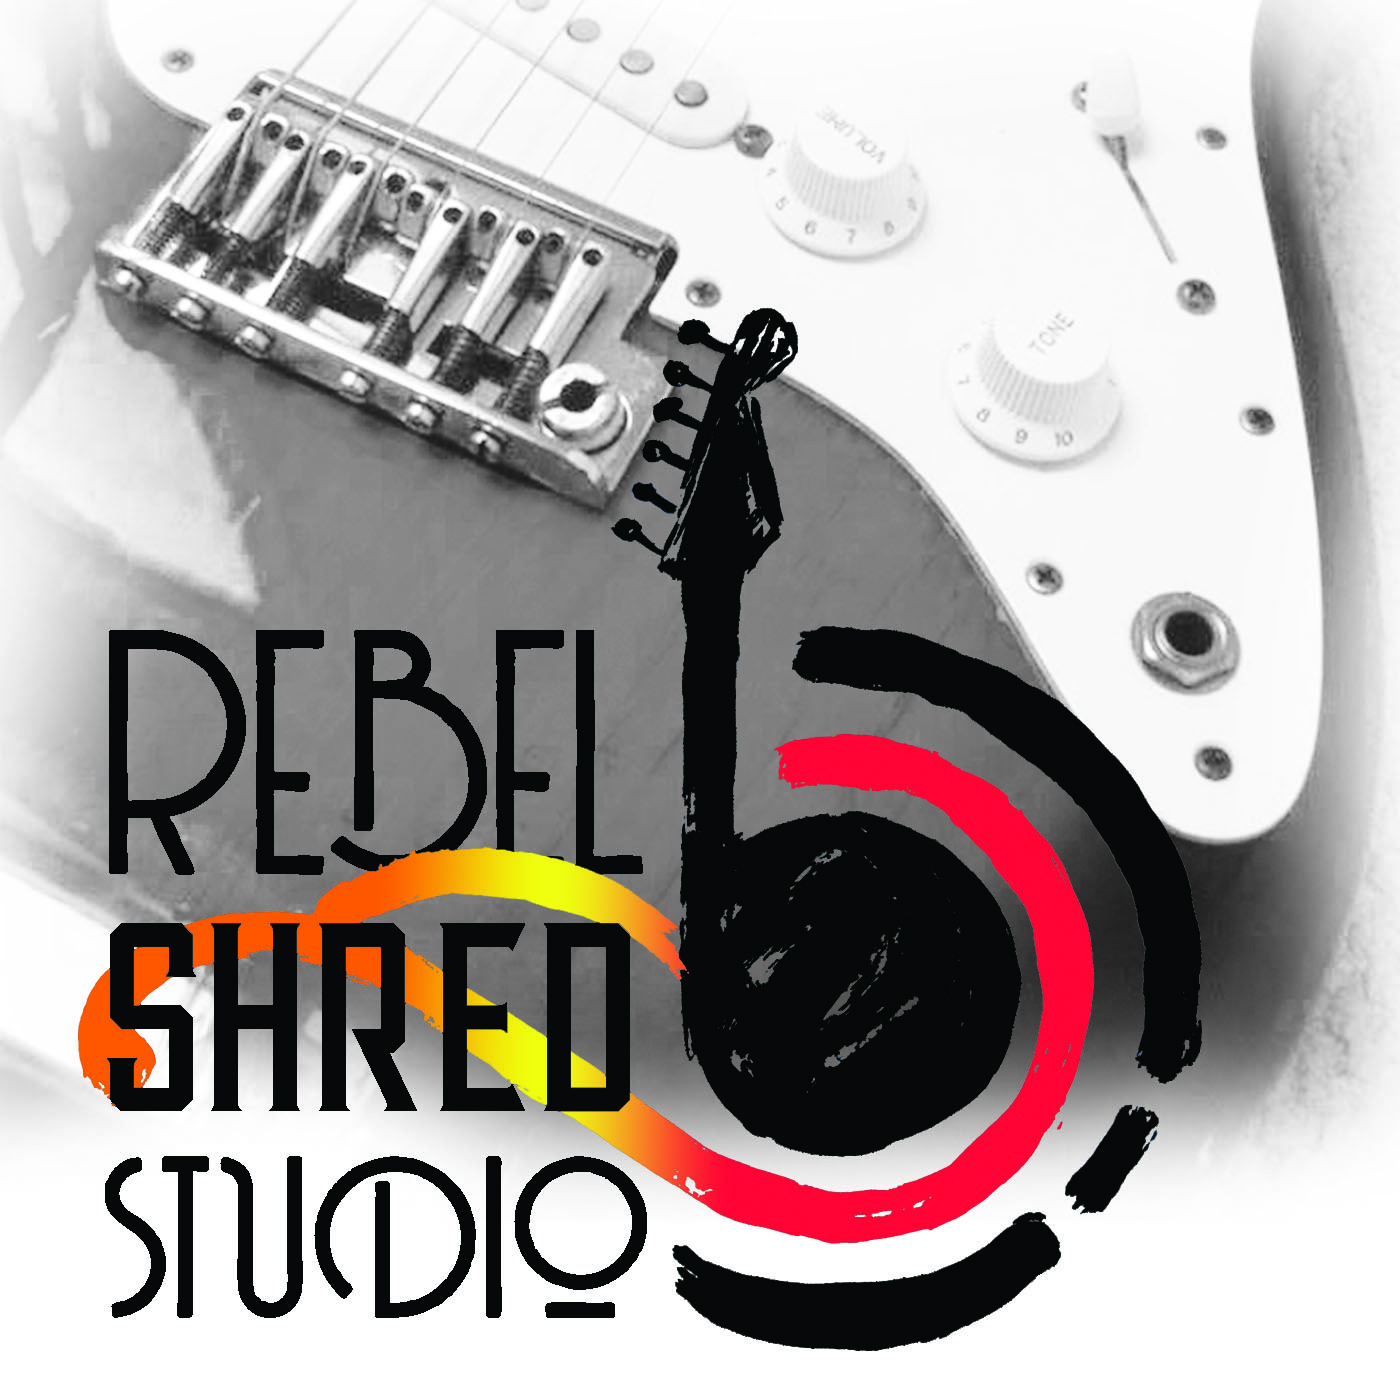 Rebel Shred Studio